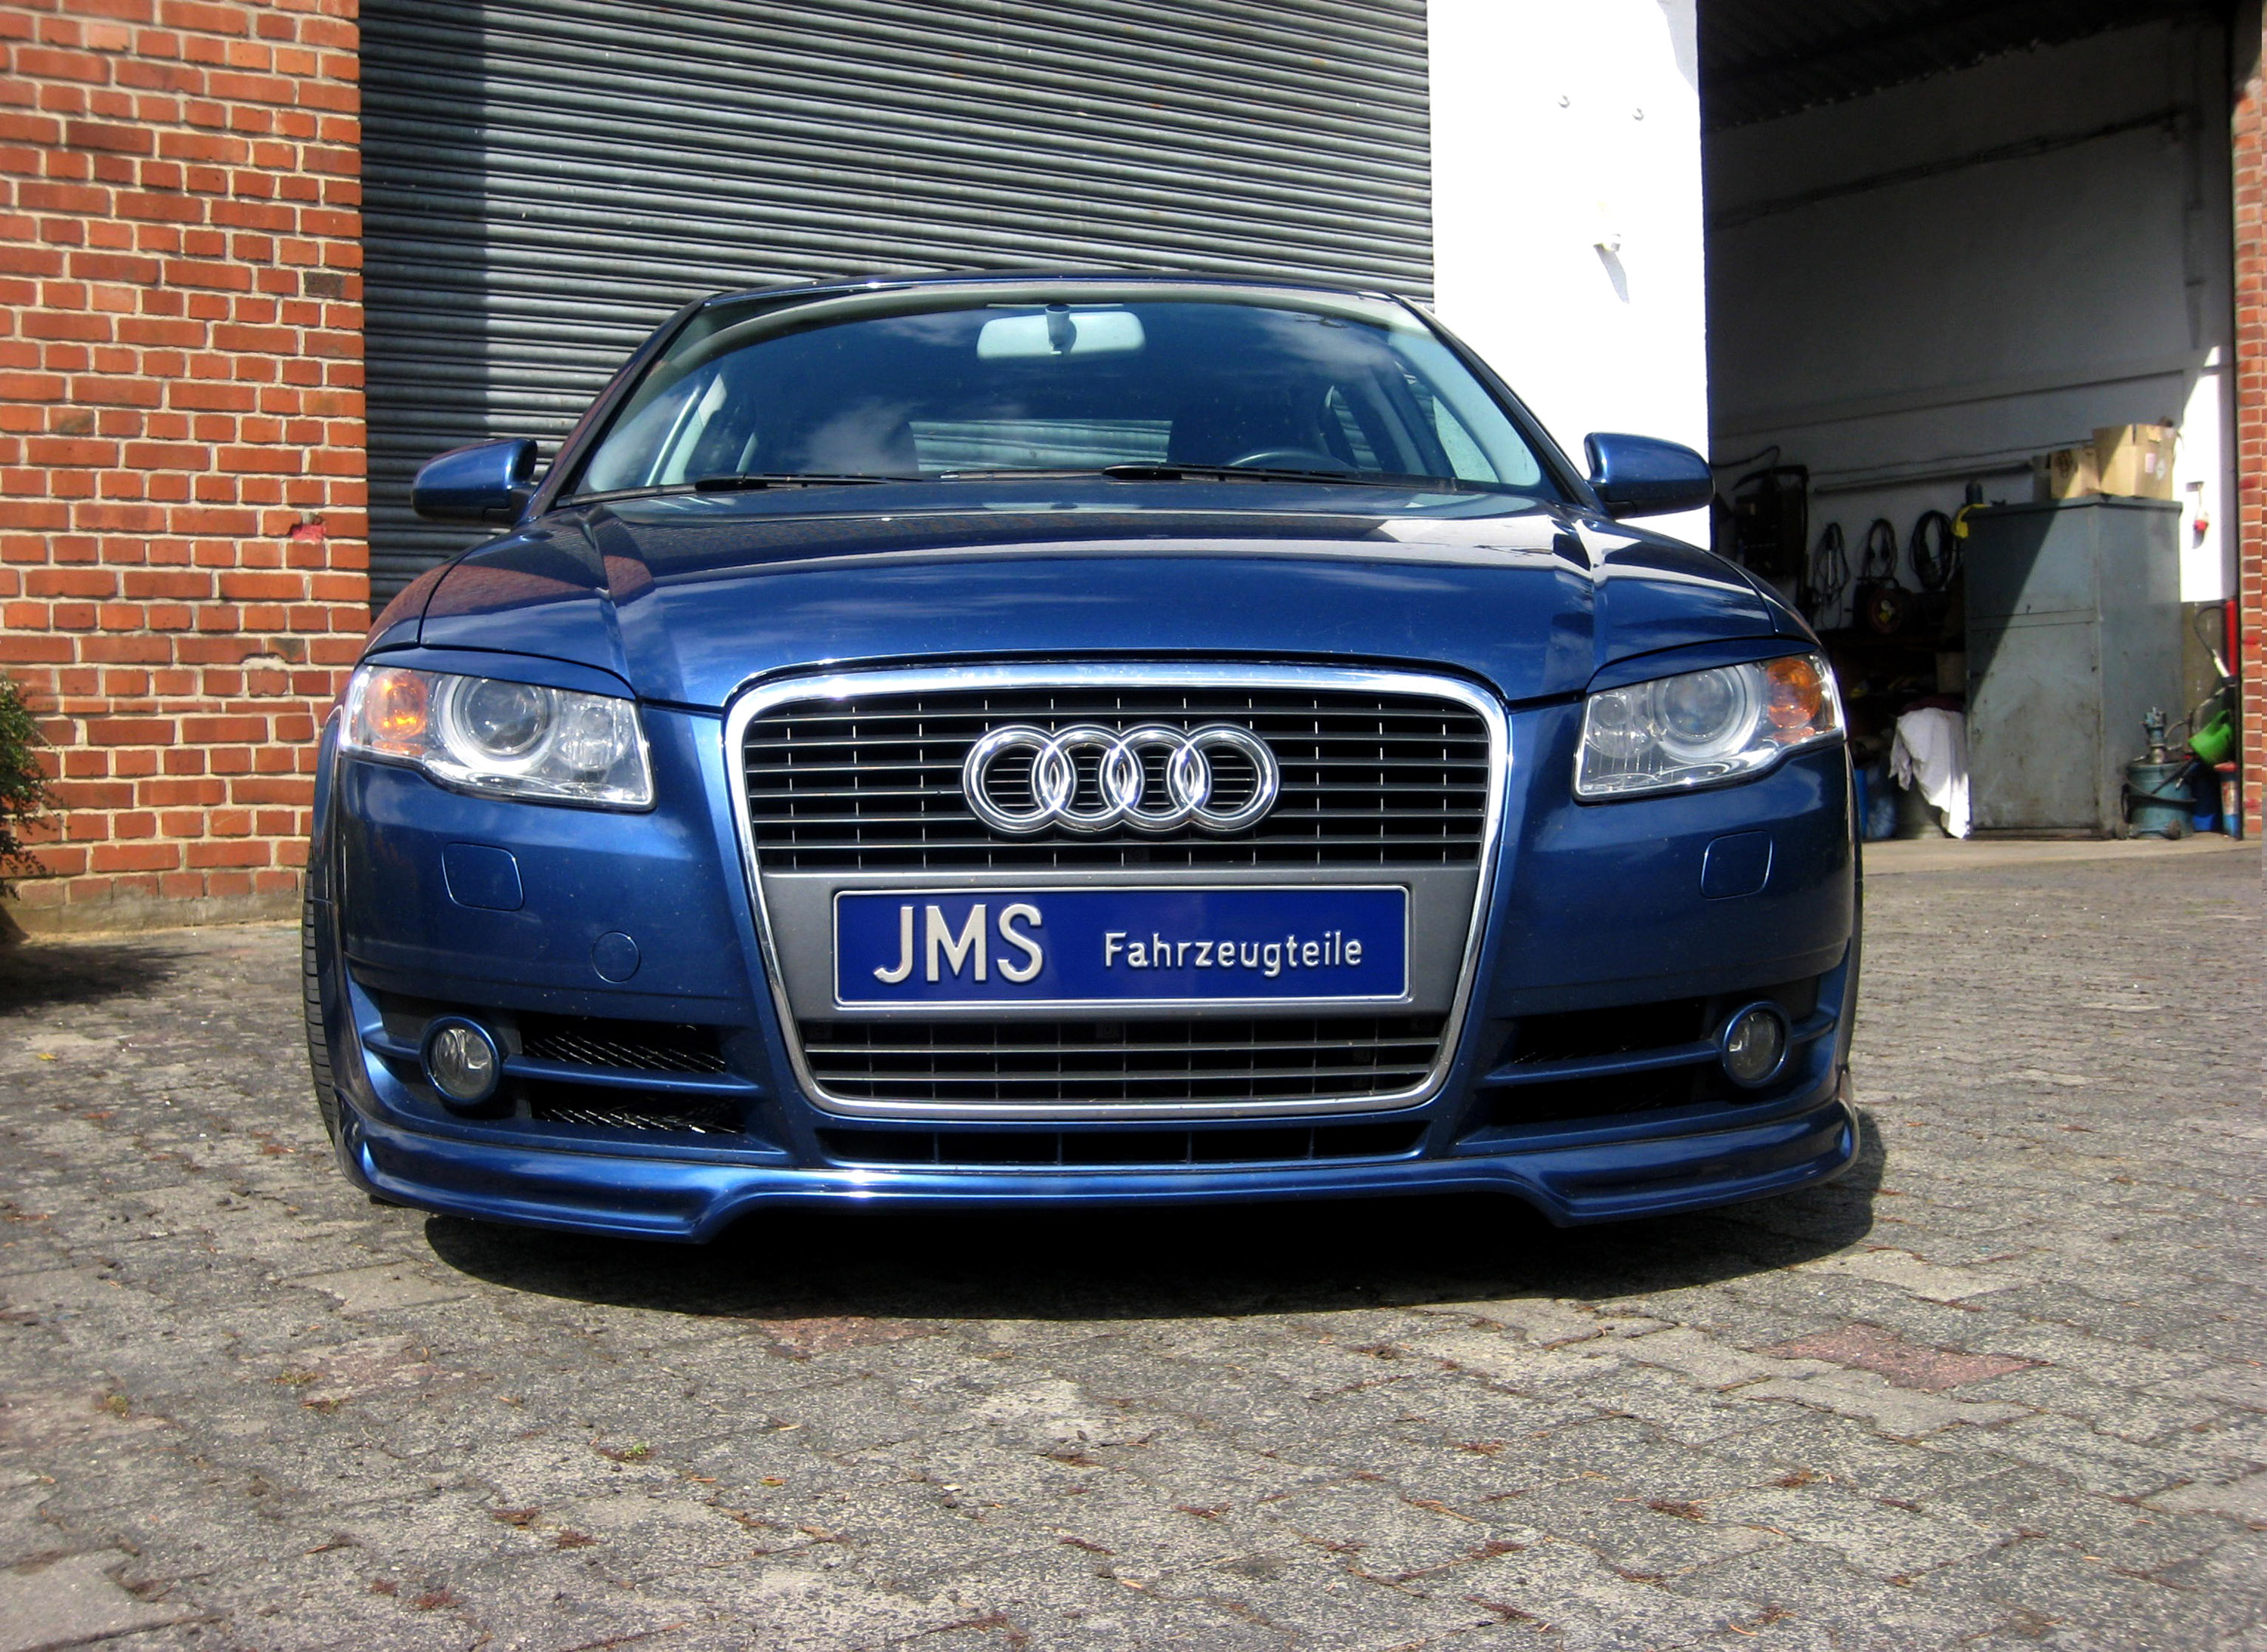 JMS Audi A4   Cheap And Simple Audi Car Tuning On Audi Q7 Tuning, ...